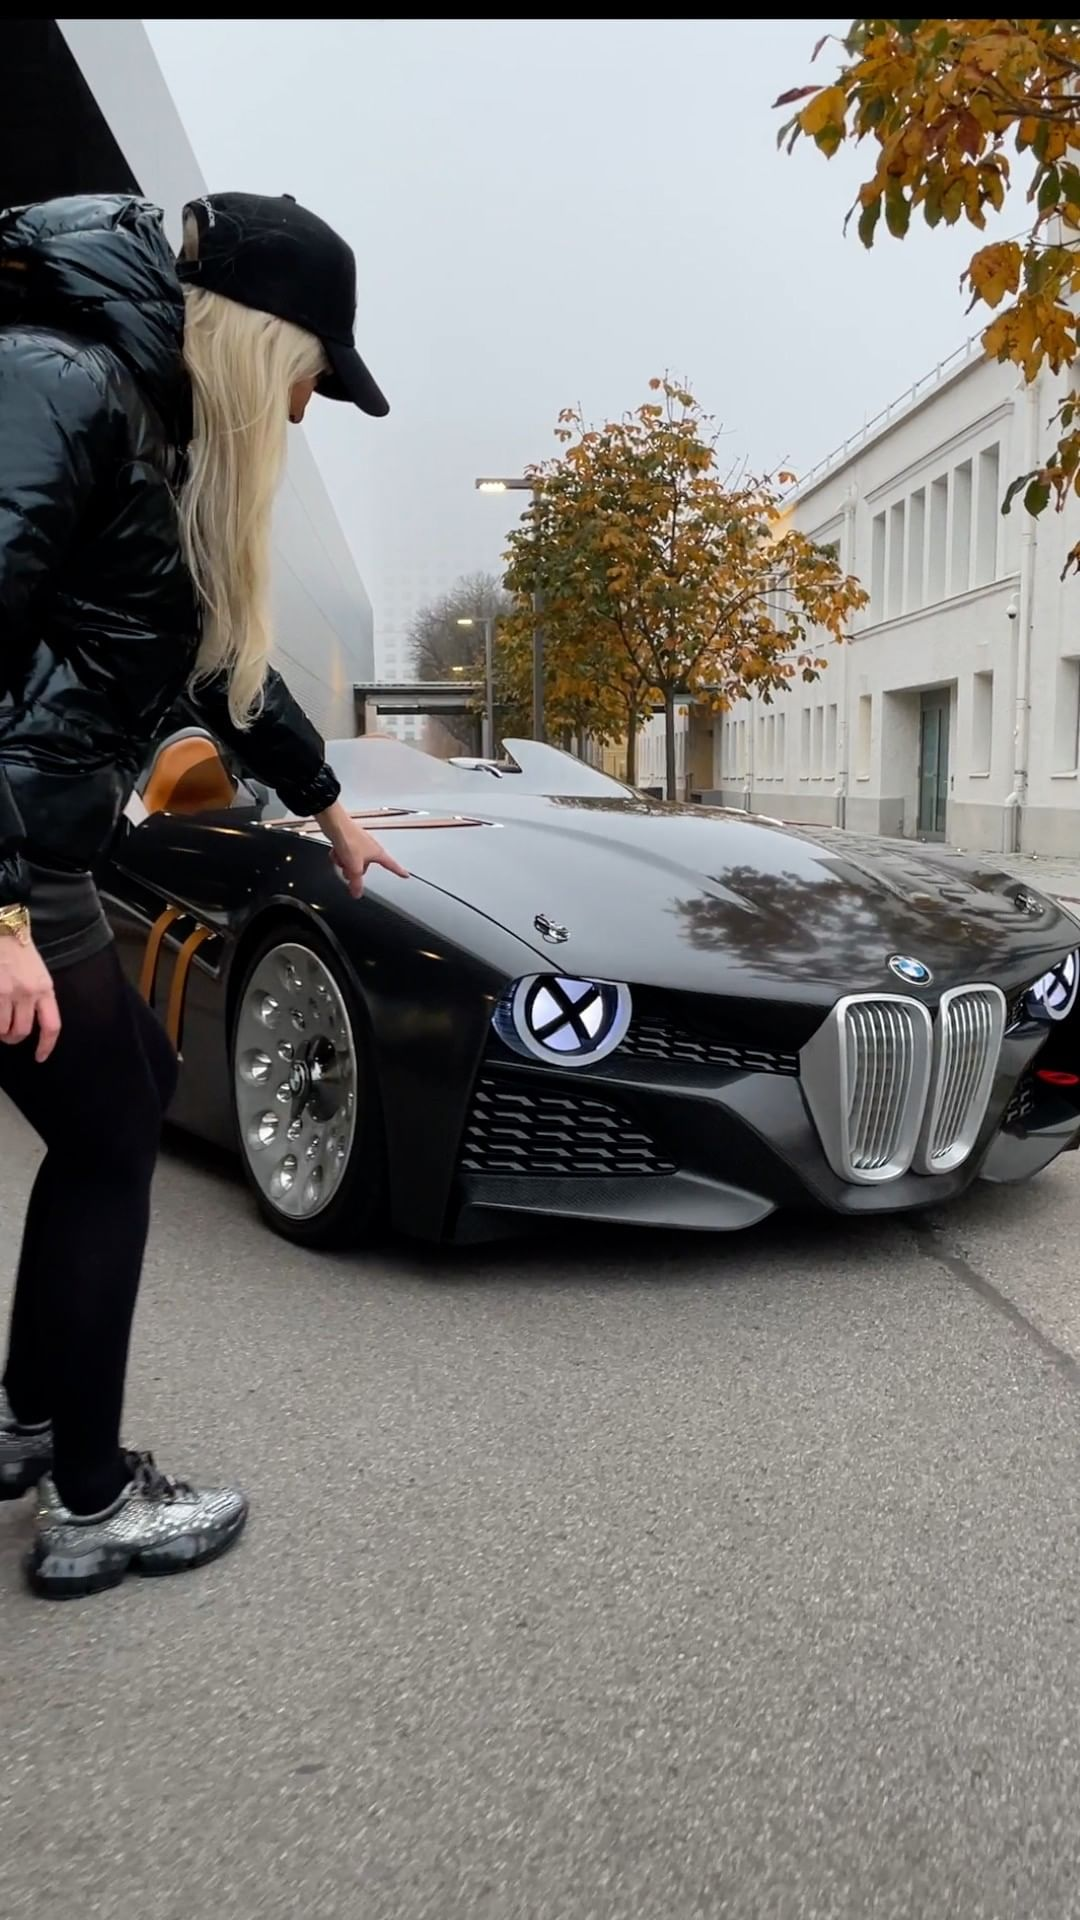 This is the 328 Hommage, one of the most beatiful and most insane soun – Alexandra Mary – supercar blondie 📰